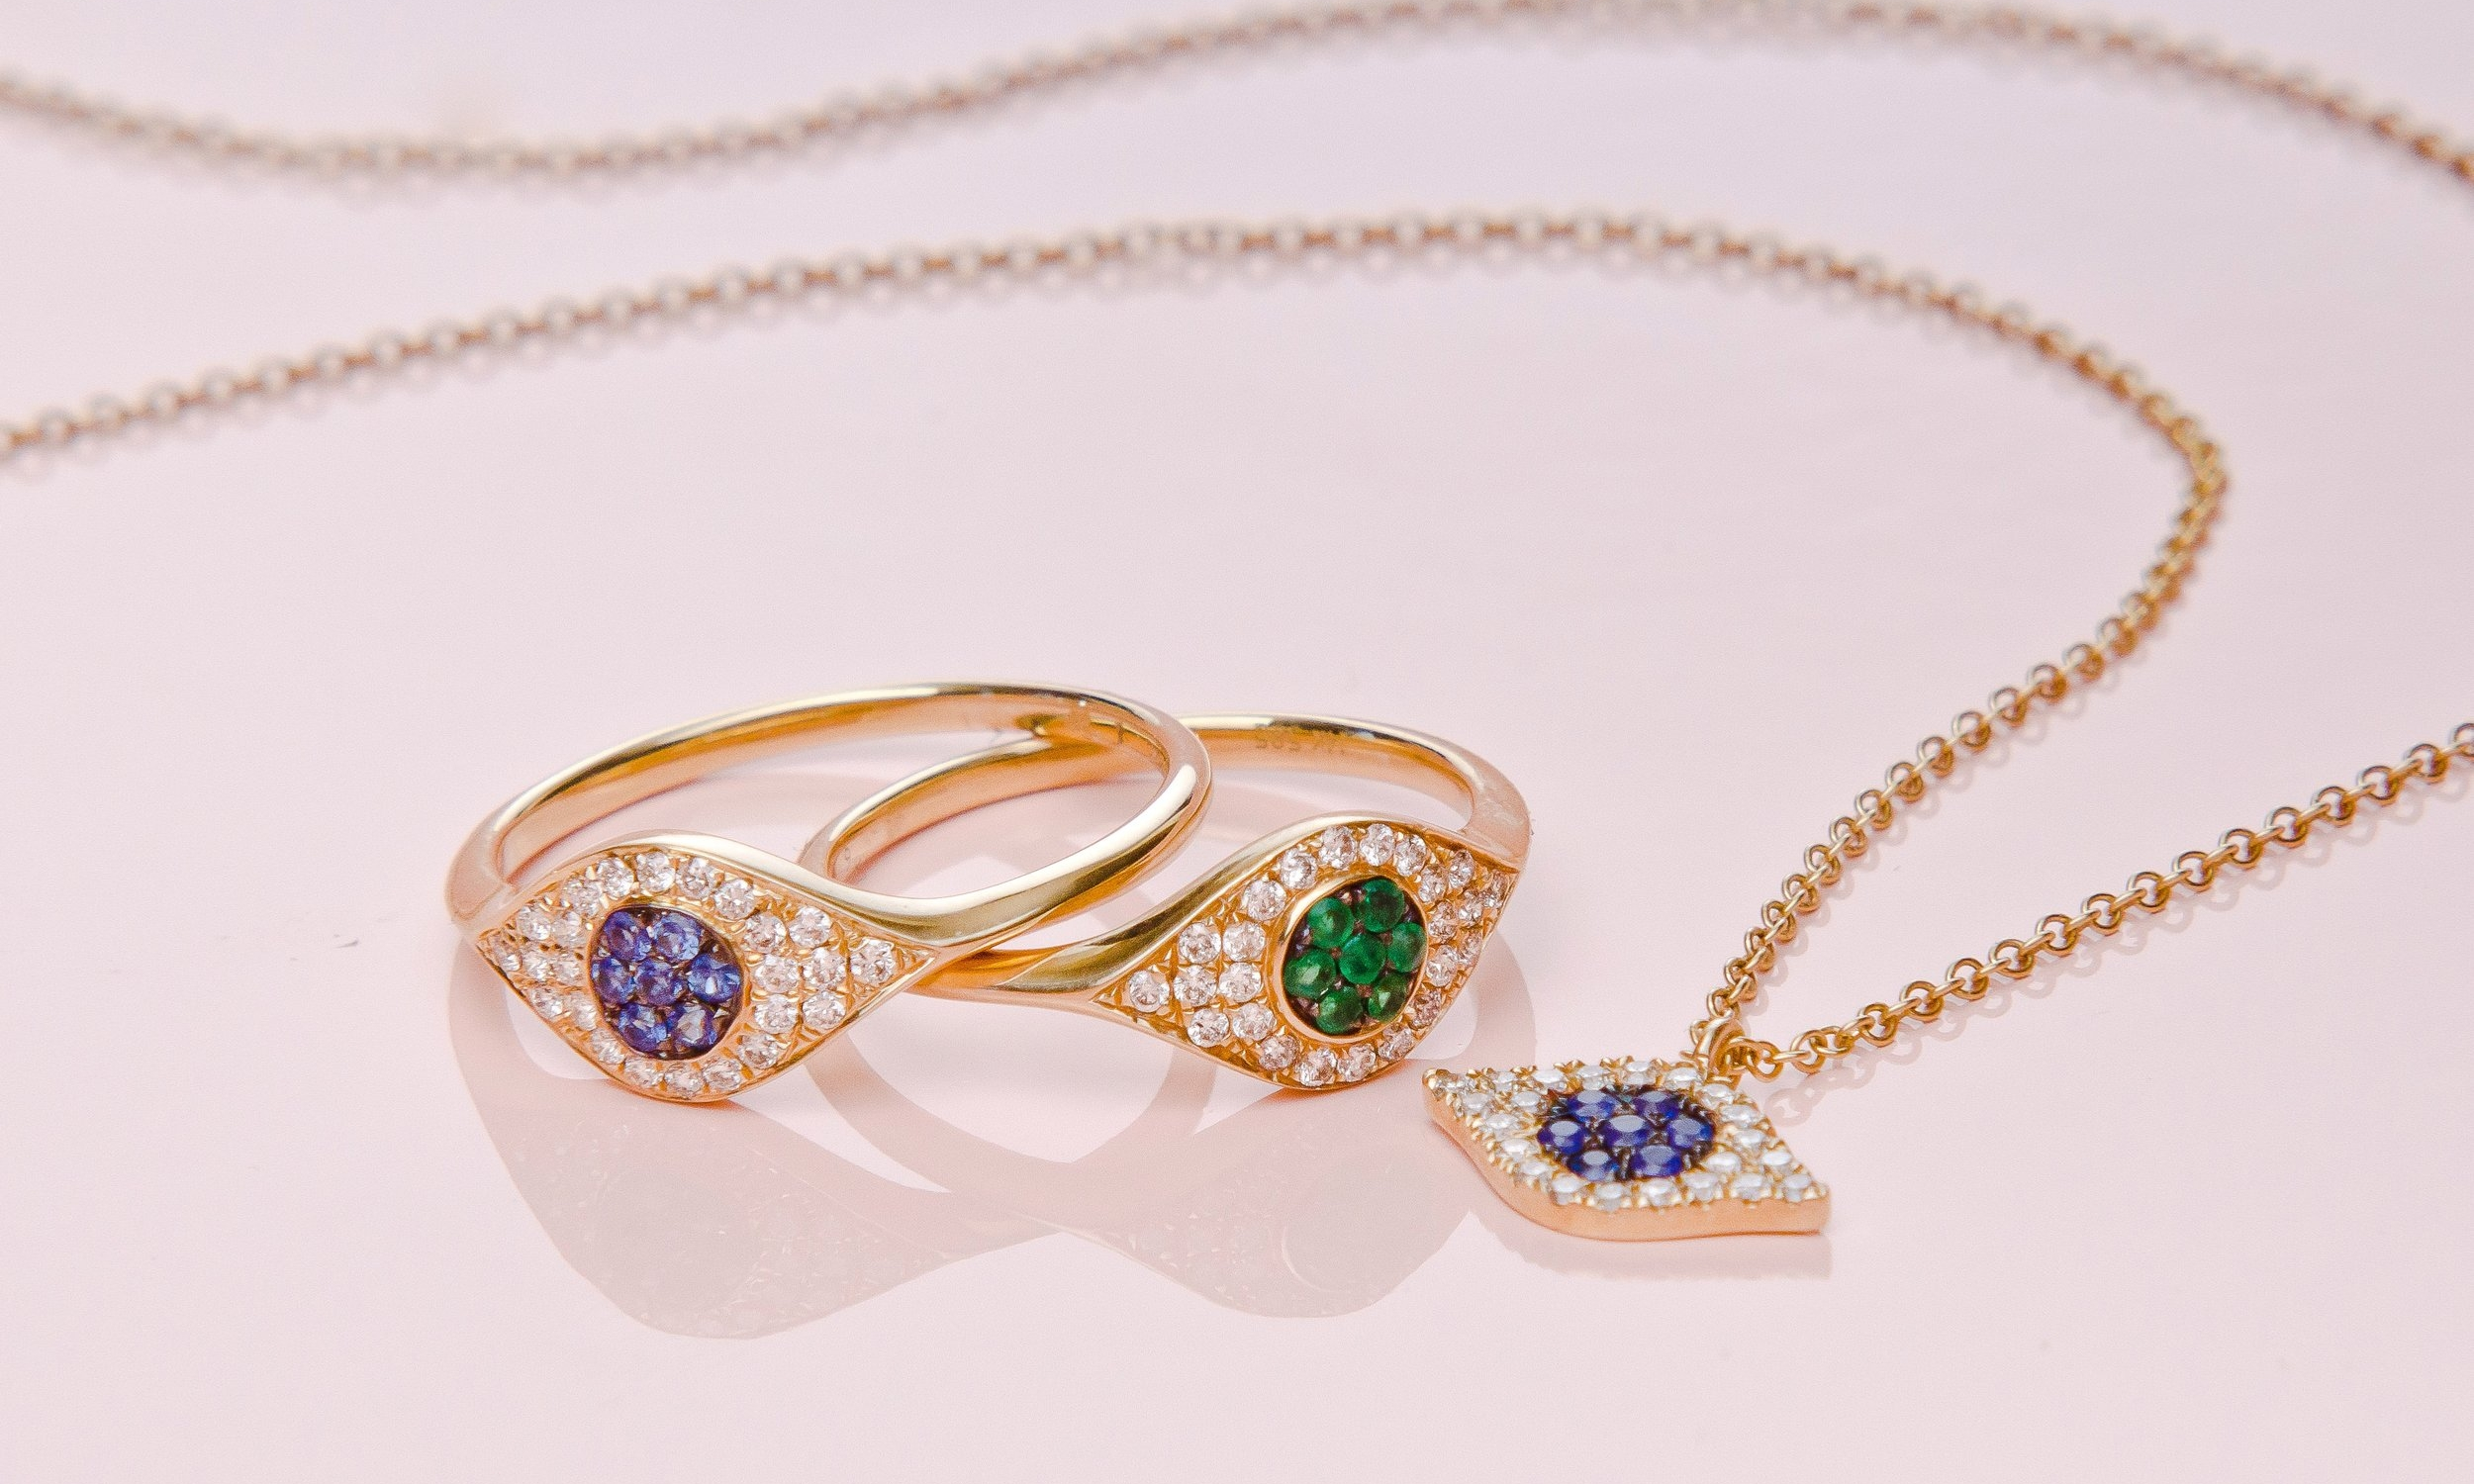 Feeling FINE? - You'll love our FINE line, 14kt gold pieces special enough for everyday. Click to shop.